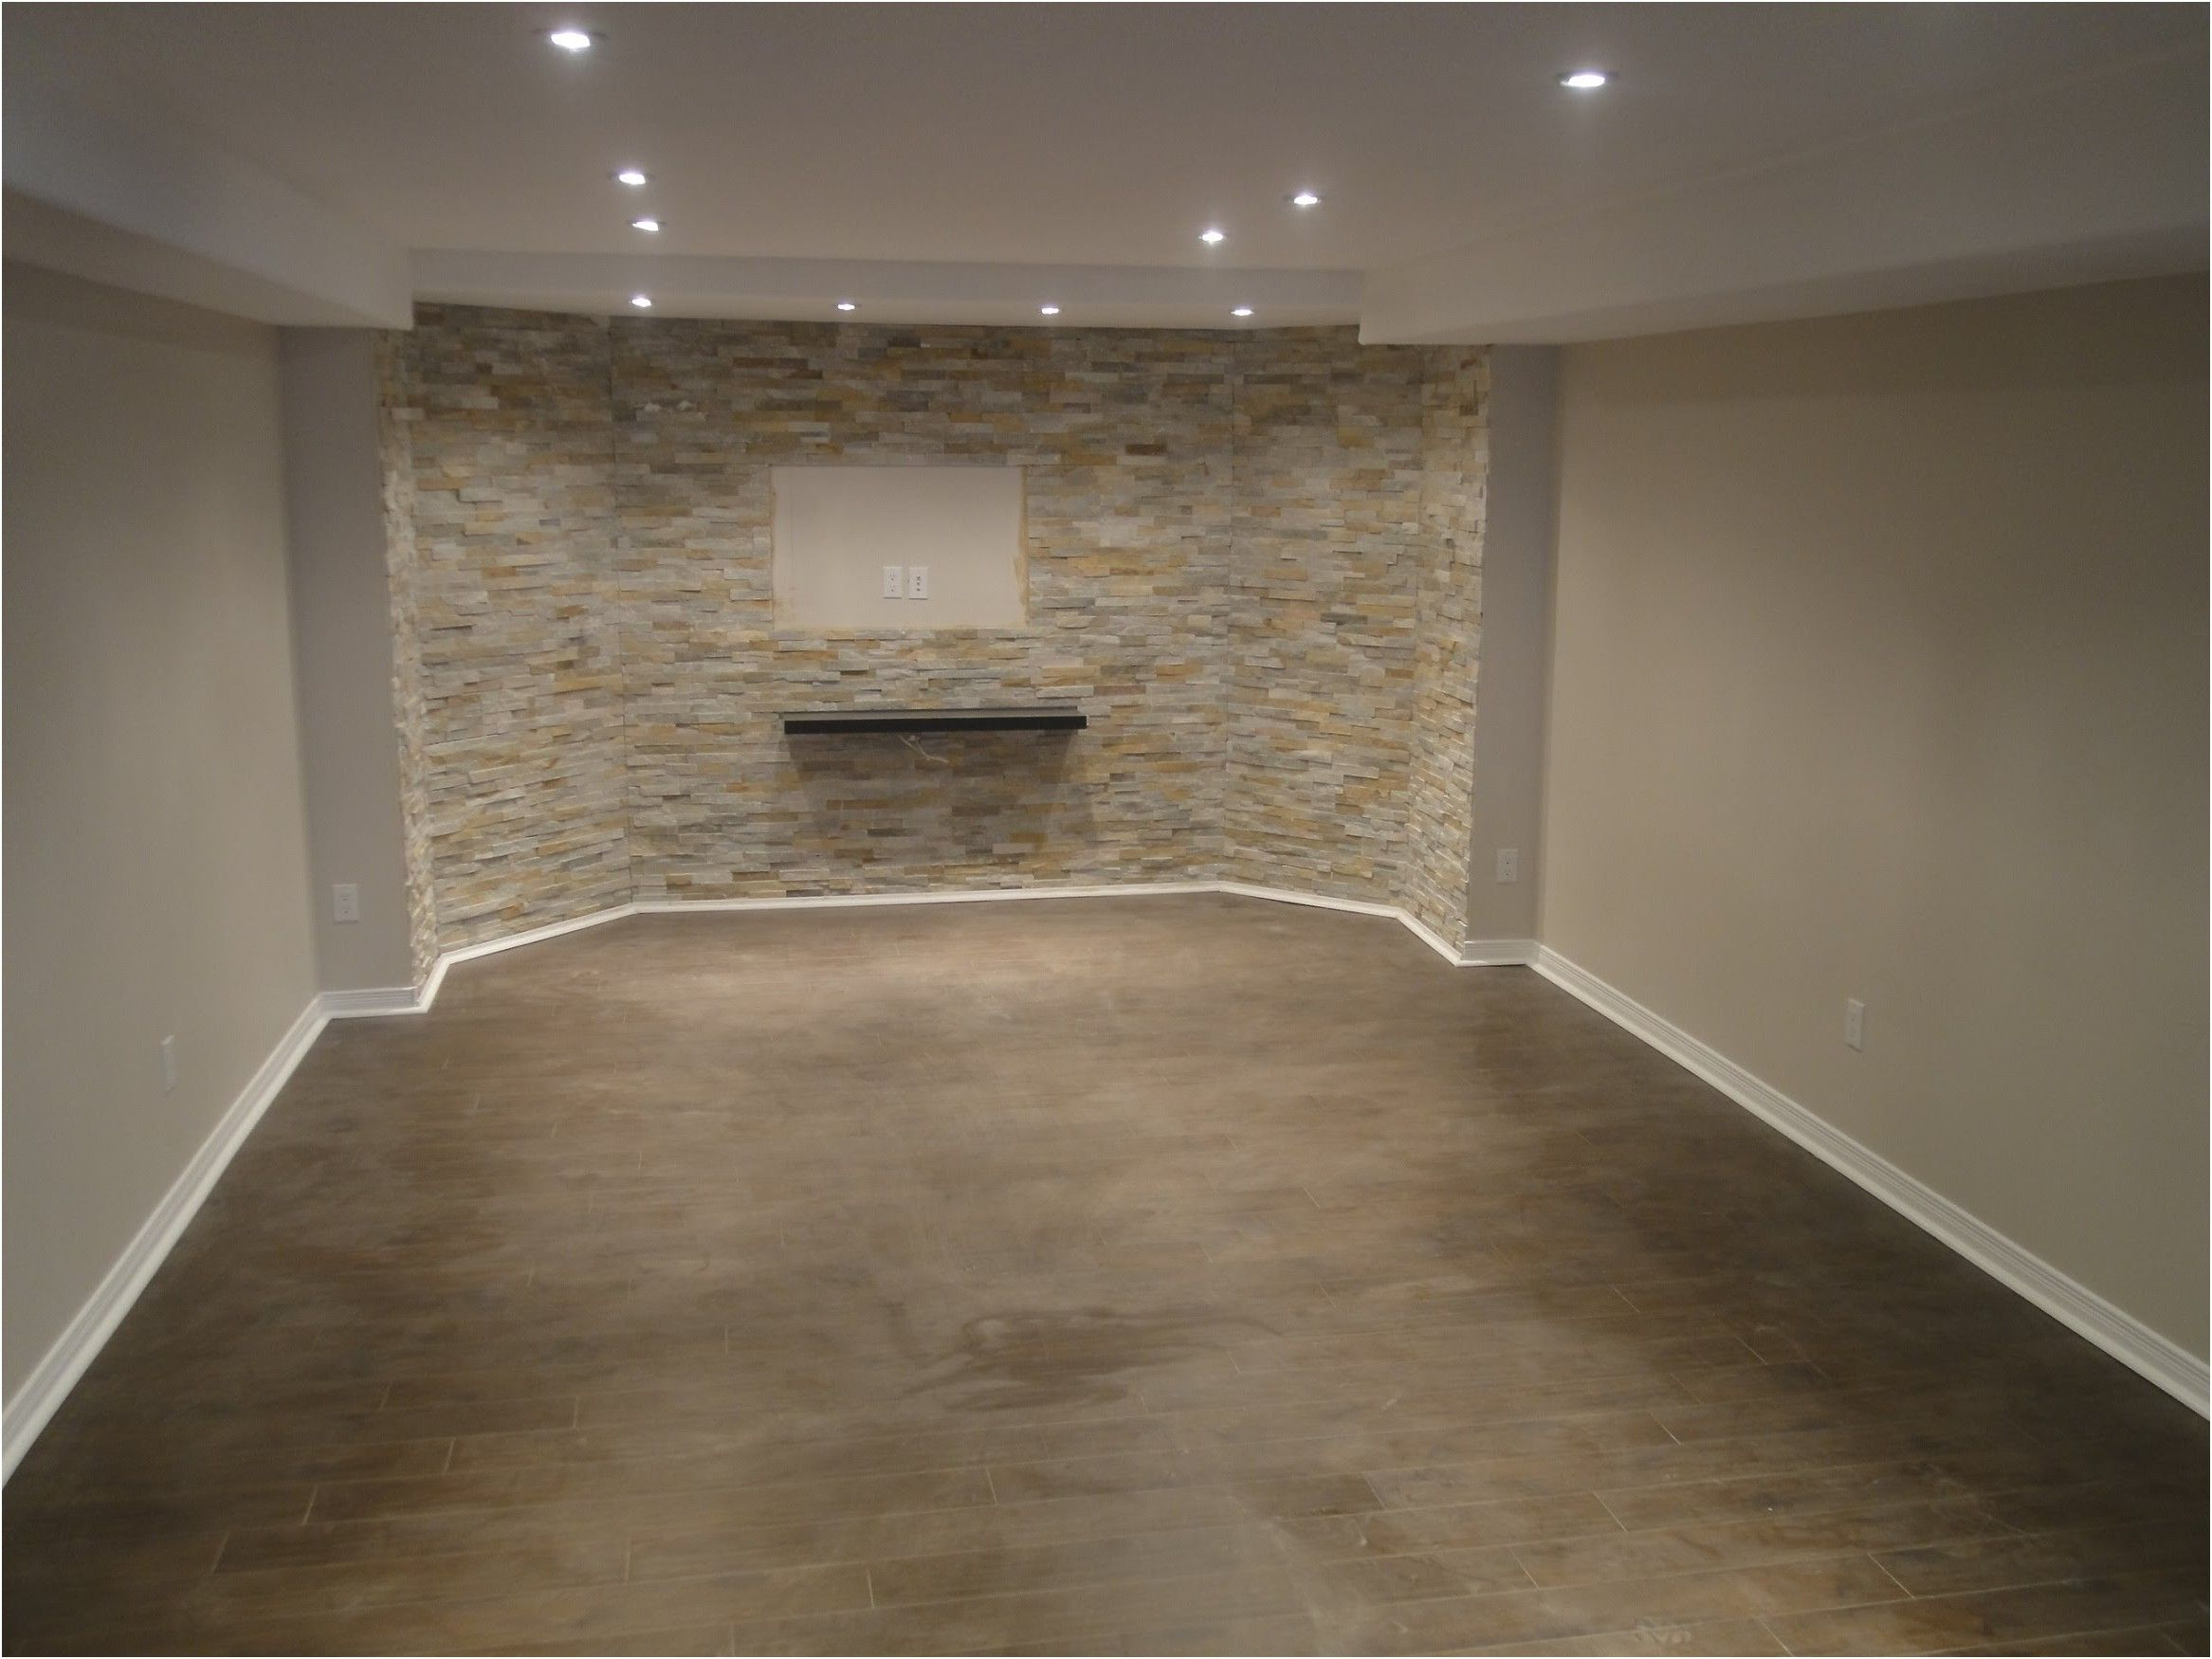 Finishing A Basement From Start To Finish Youtube From Finishing A Basement Step By Step Guide Basement Renovations Unfinished Basement Basement Remodeling